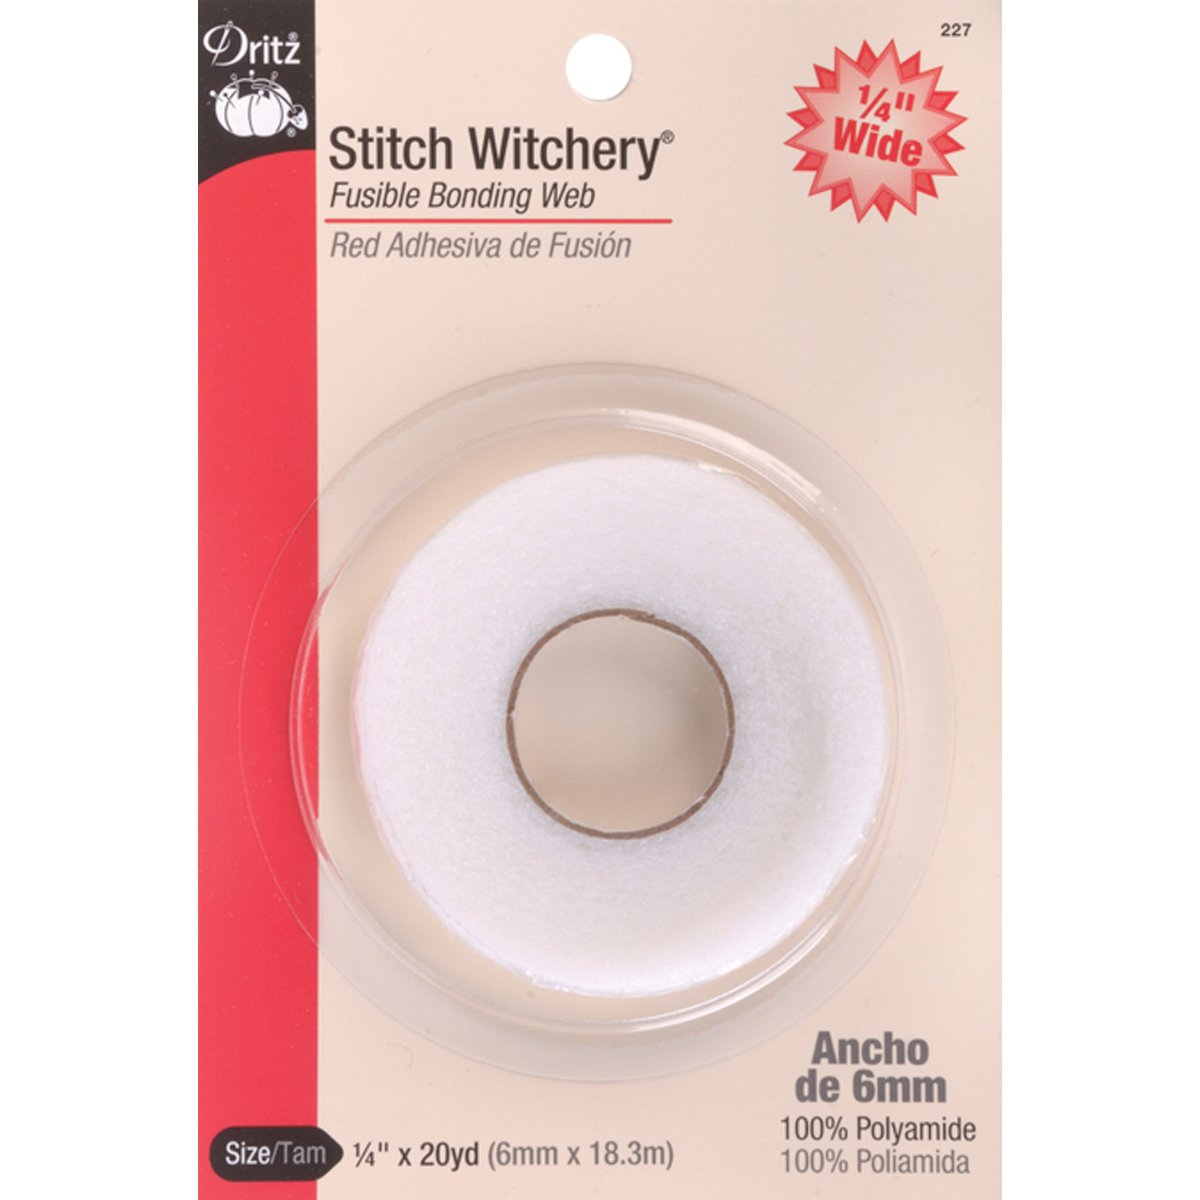 Dritz 227 1/4-Inch by 20-Yard Stitch Witchery, Regular (3 Pack)